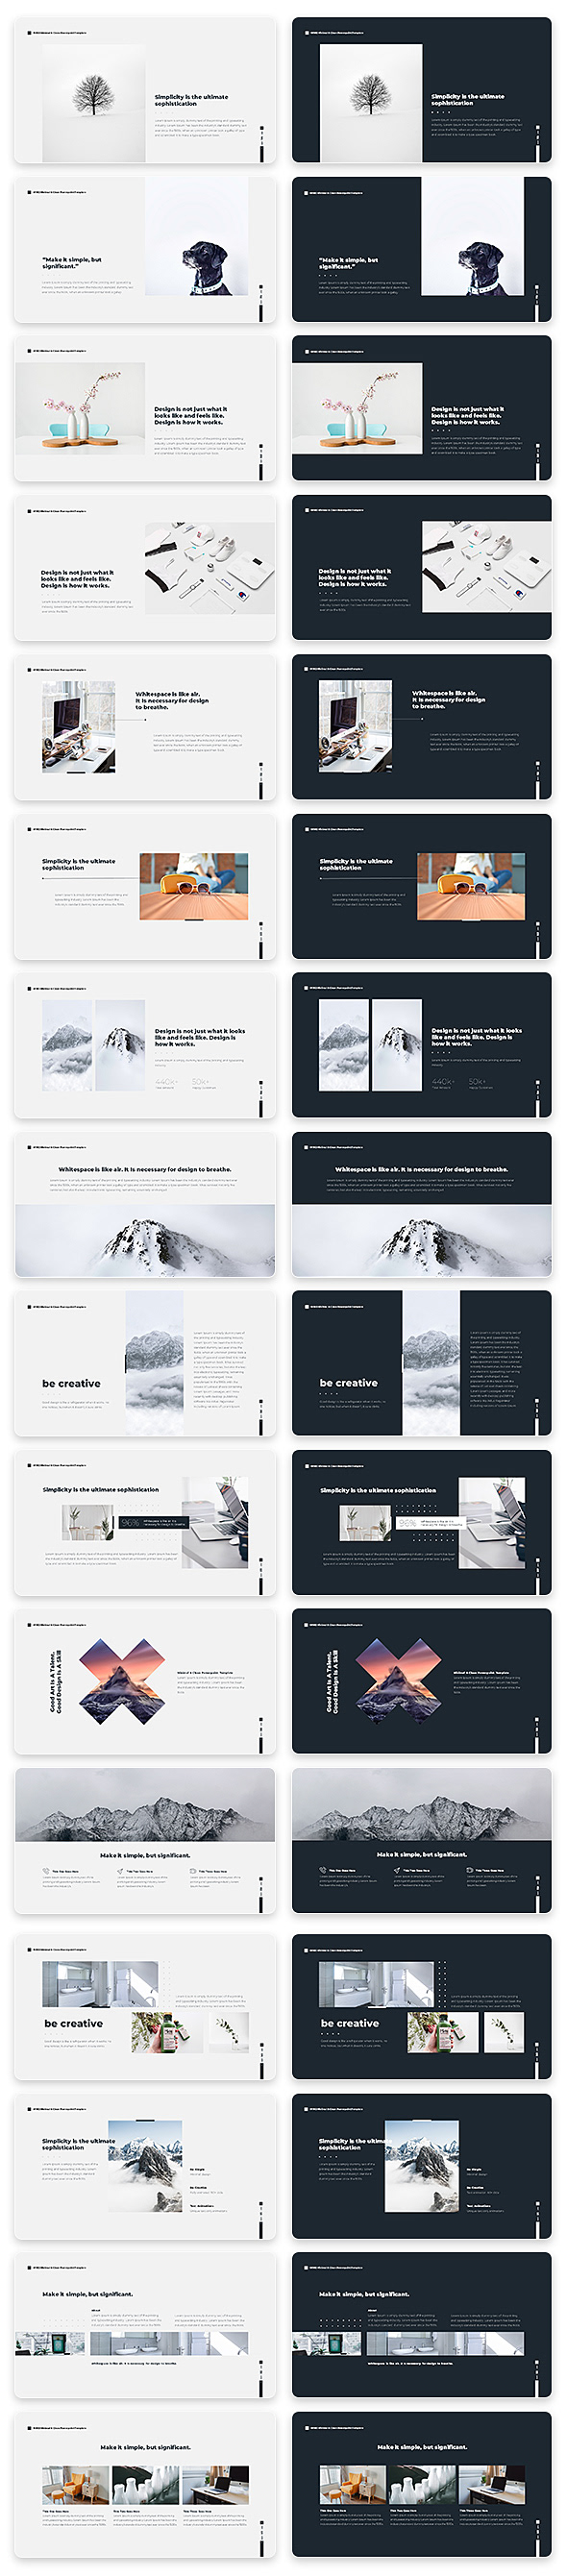 Wind Minimal & Clean Powerpoint With Text Animation Pack - 7